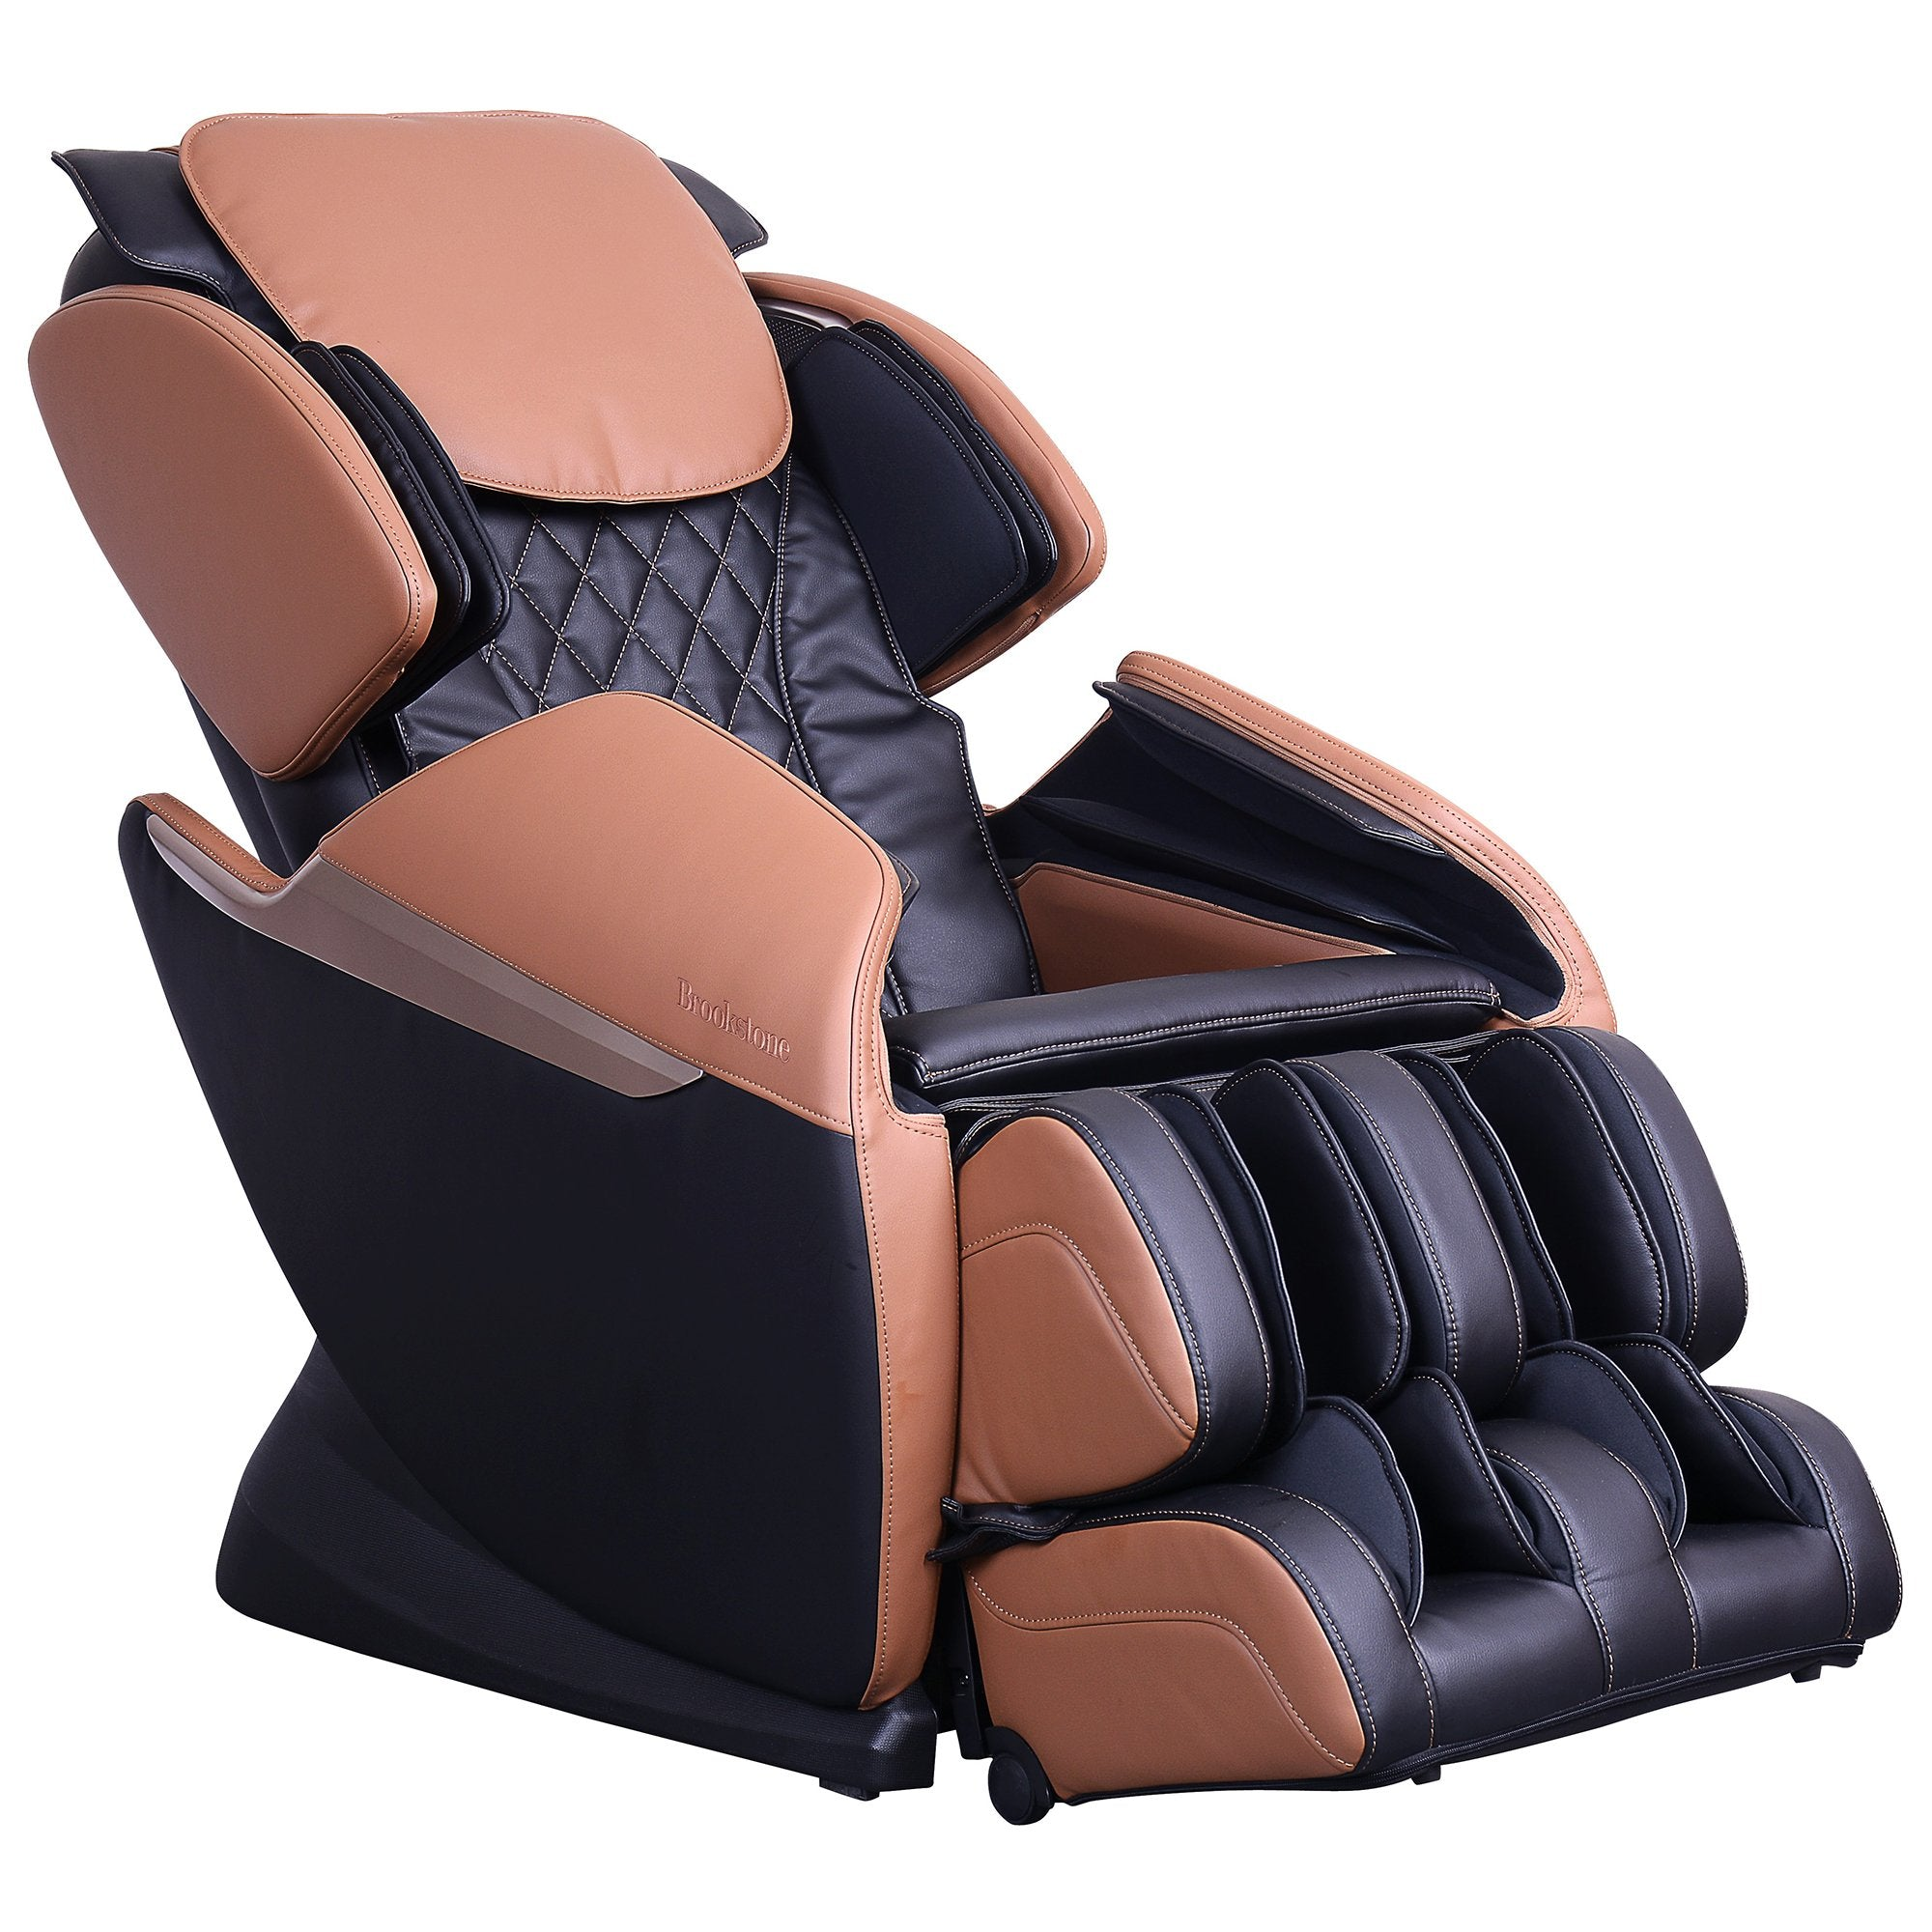 Cozzia Brookstone BK-150 Massage Chair in Black/toffee